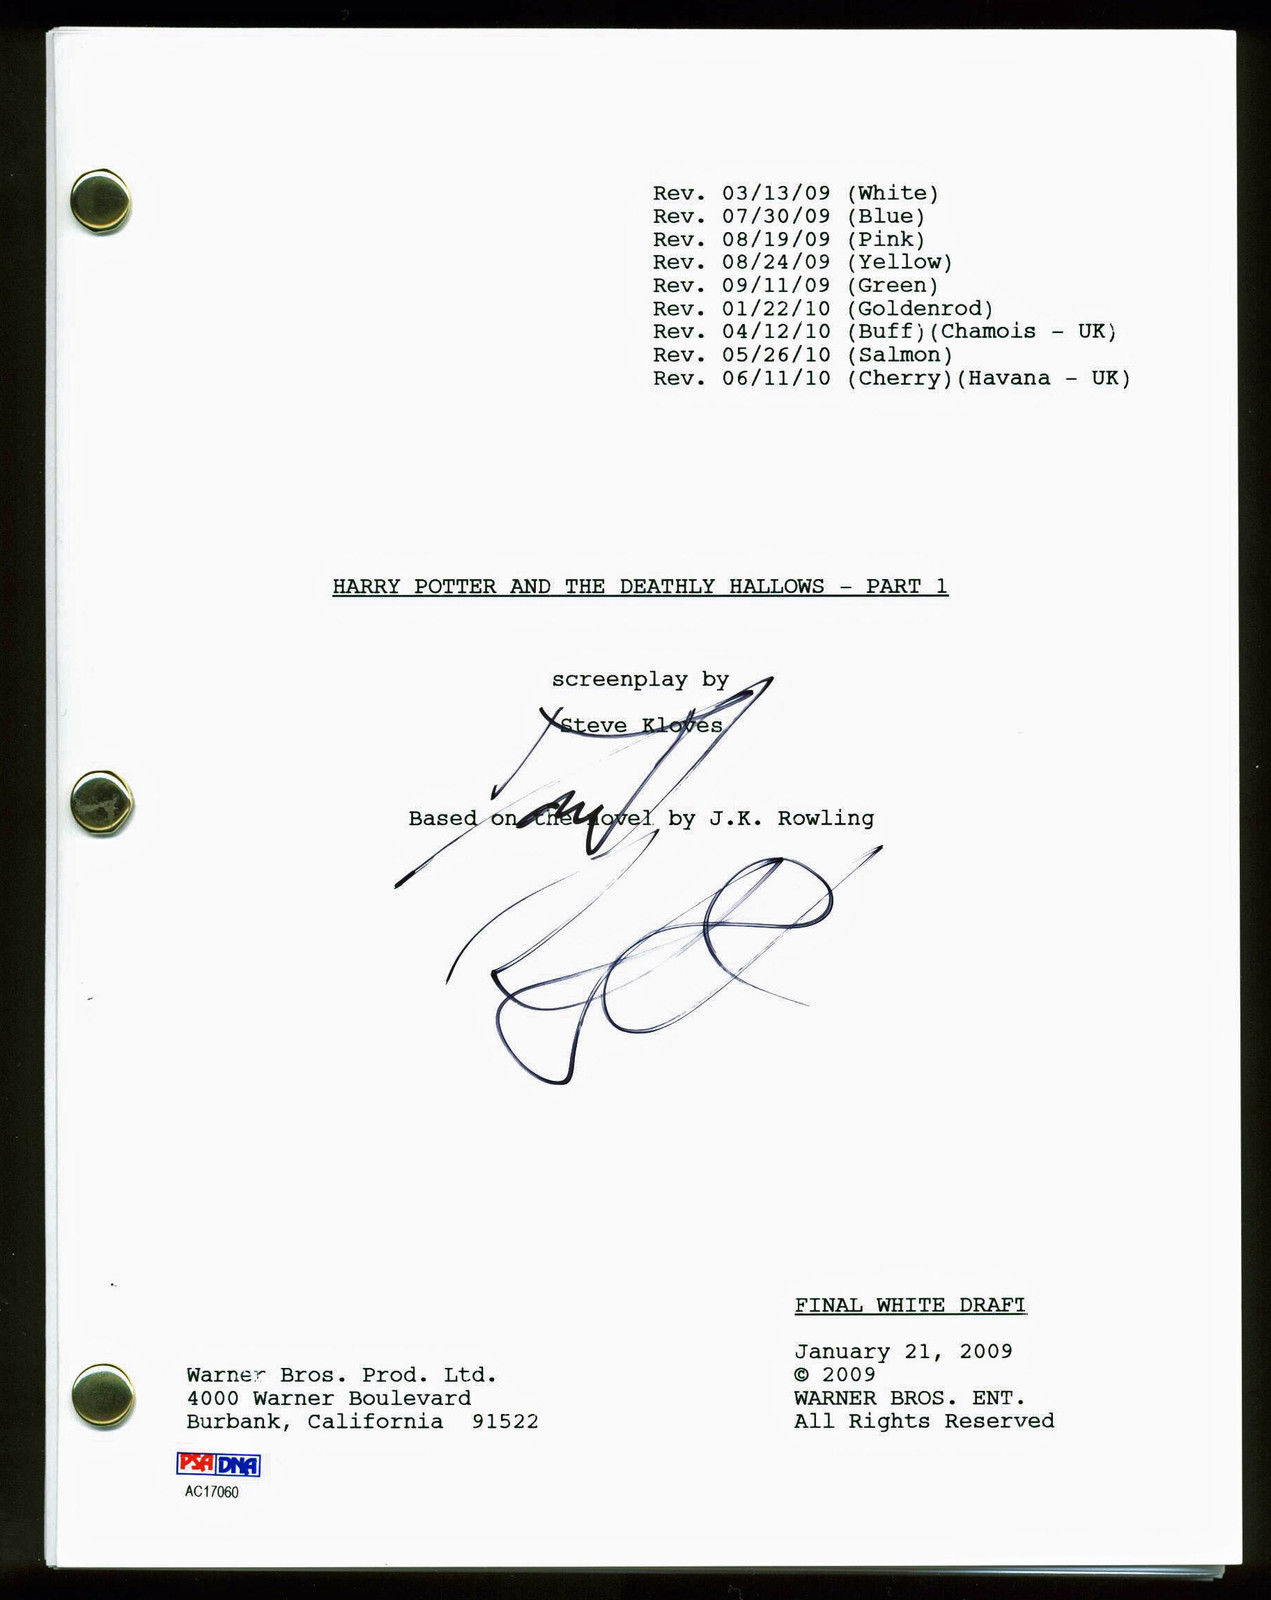 harry potter and the deathly hallows script pdf